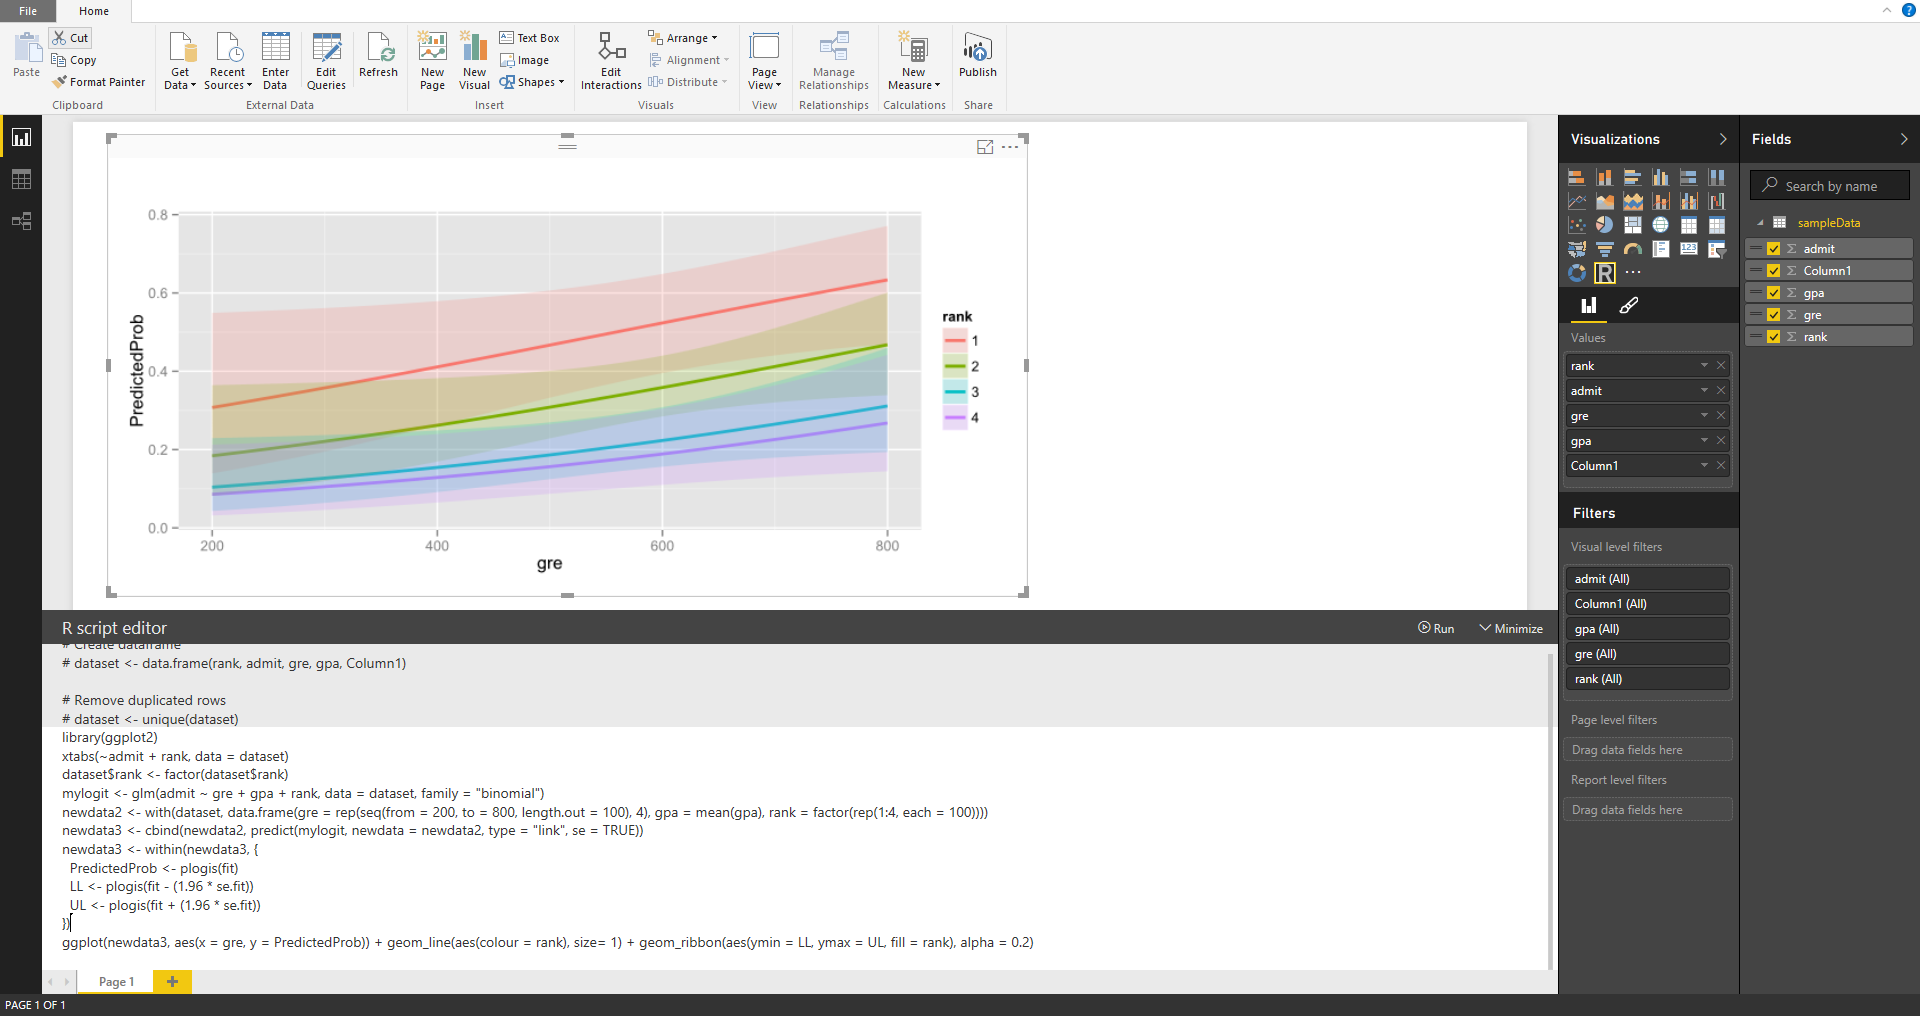 Announcing preview of R Visuals in Power BI Desktop